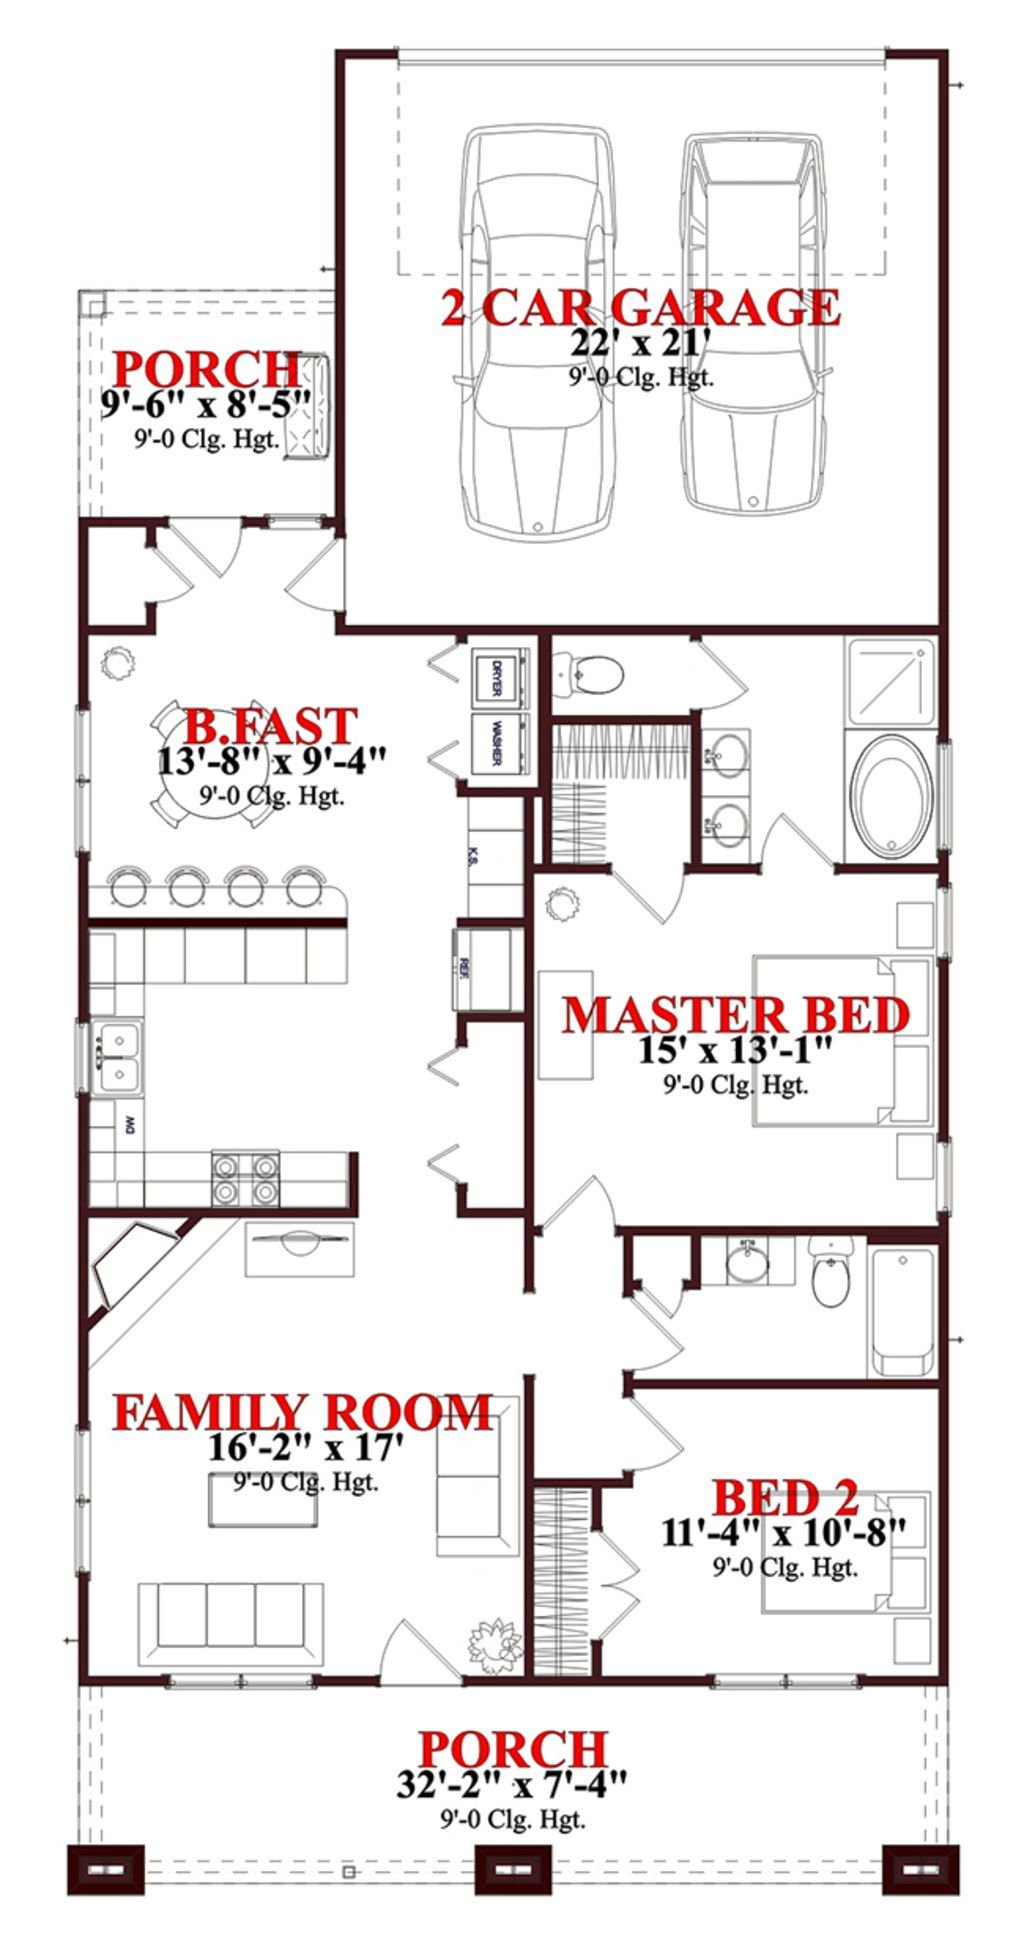 bungalow style house plan 2 beds 2 baths 1302 sq ft plan 63 273 bungalow style house plan 2 beds 2 baths 1302 sq ft plan 63